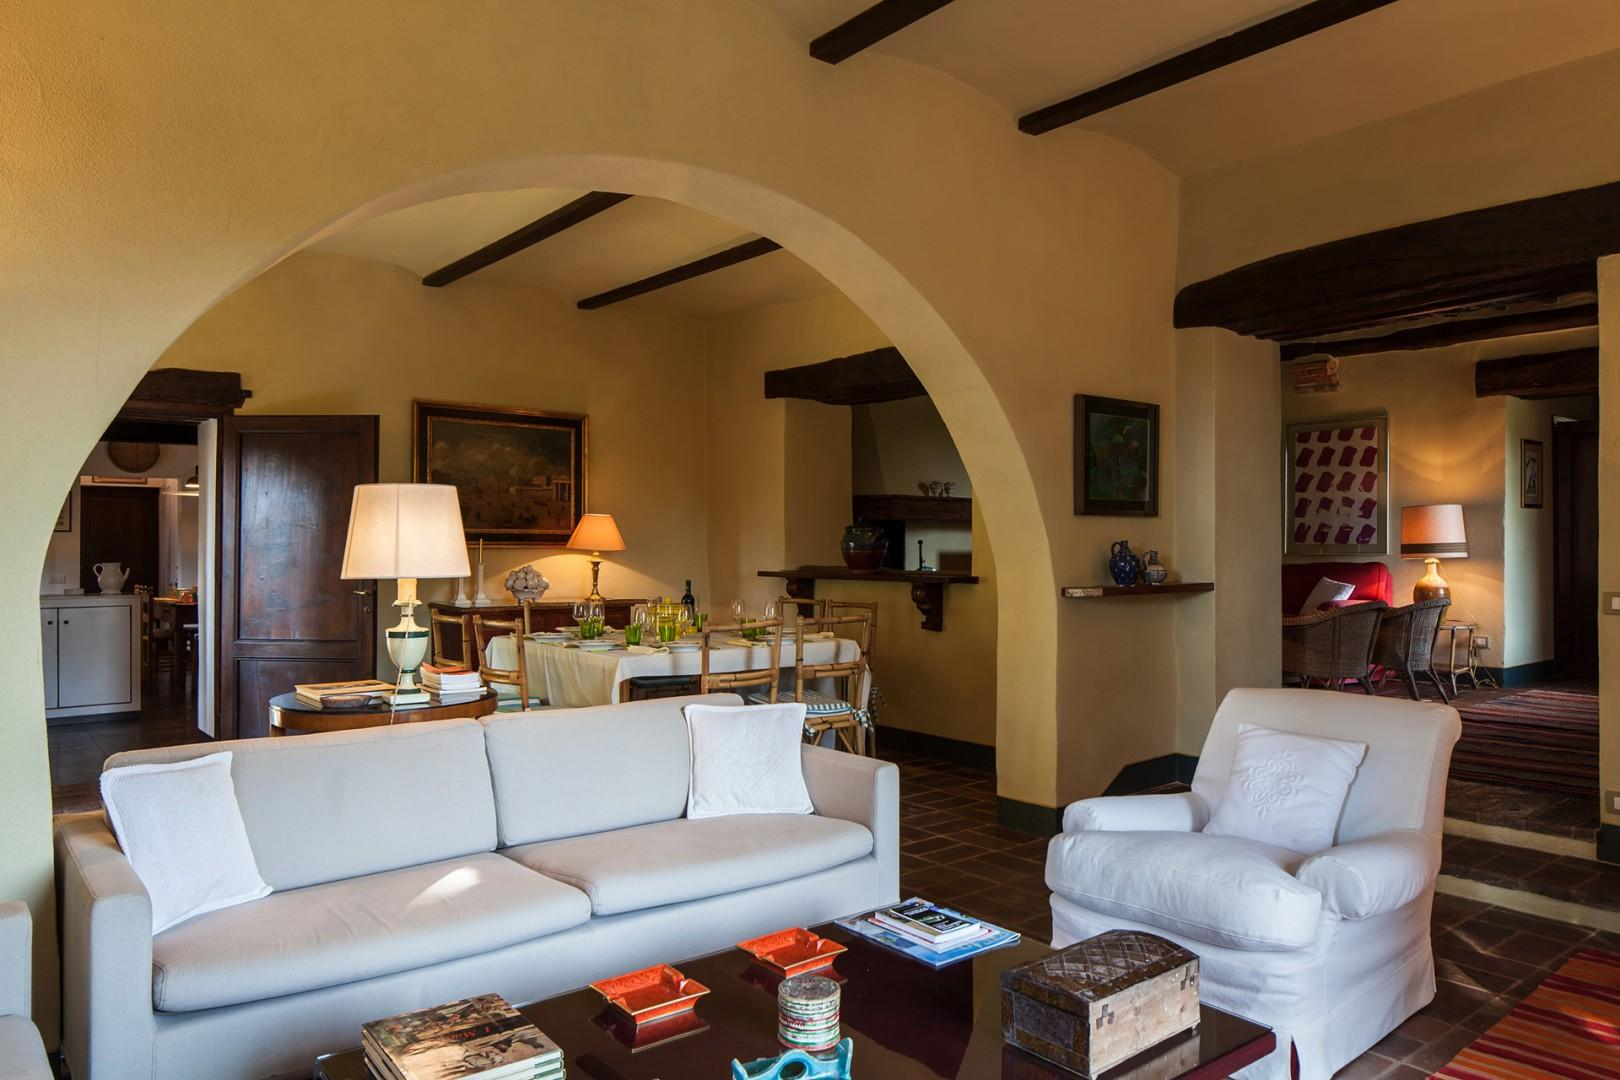 The living room of Albero is at the heart of the house and has windows that open onto the garden.